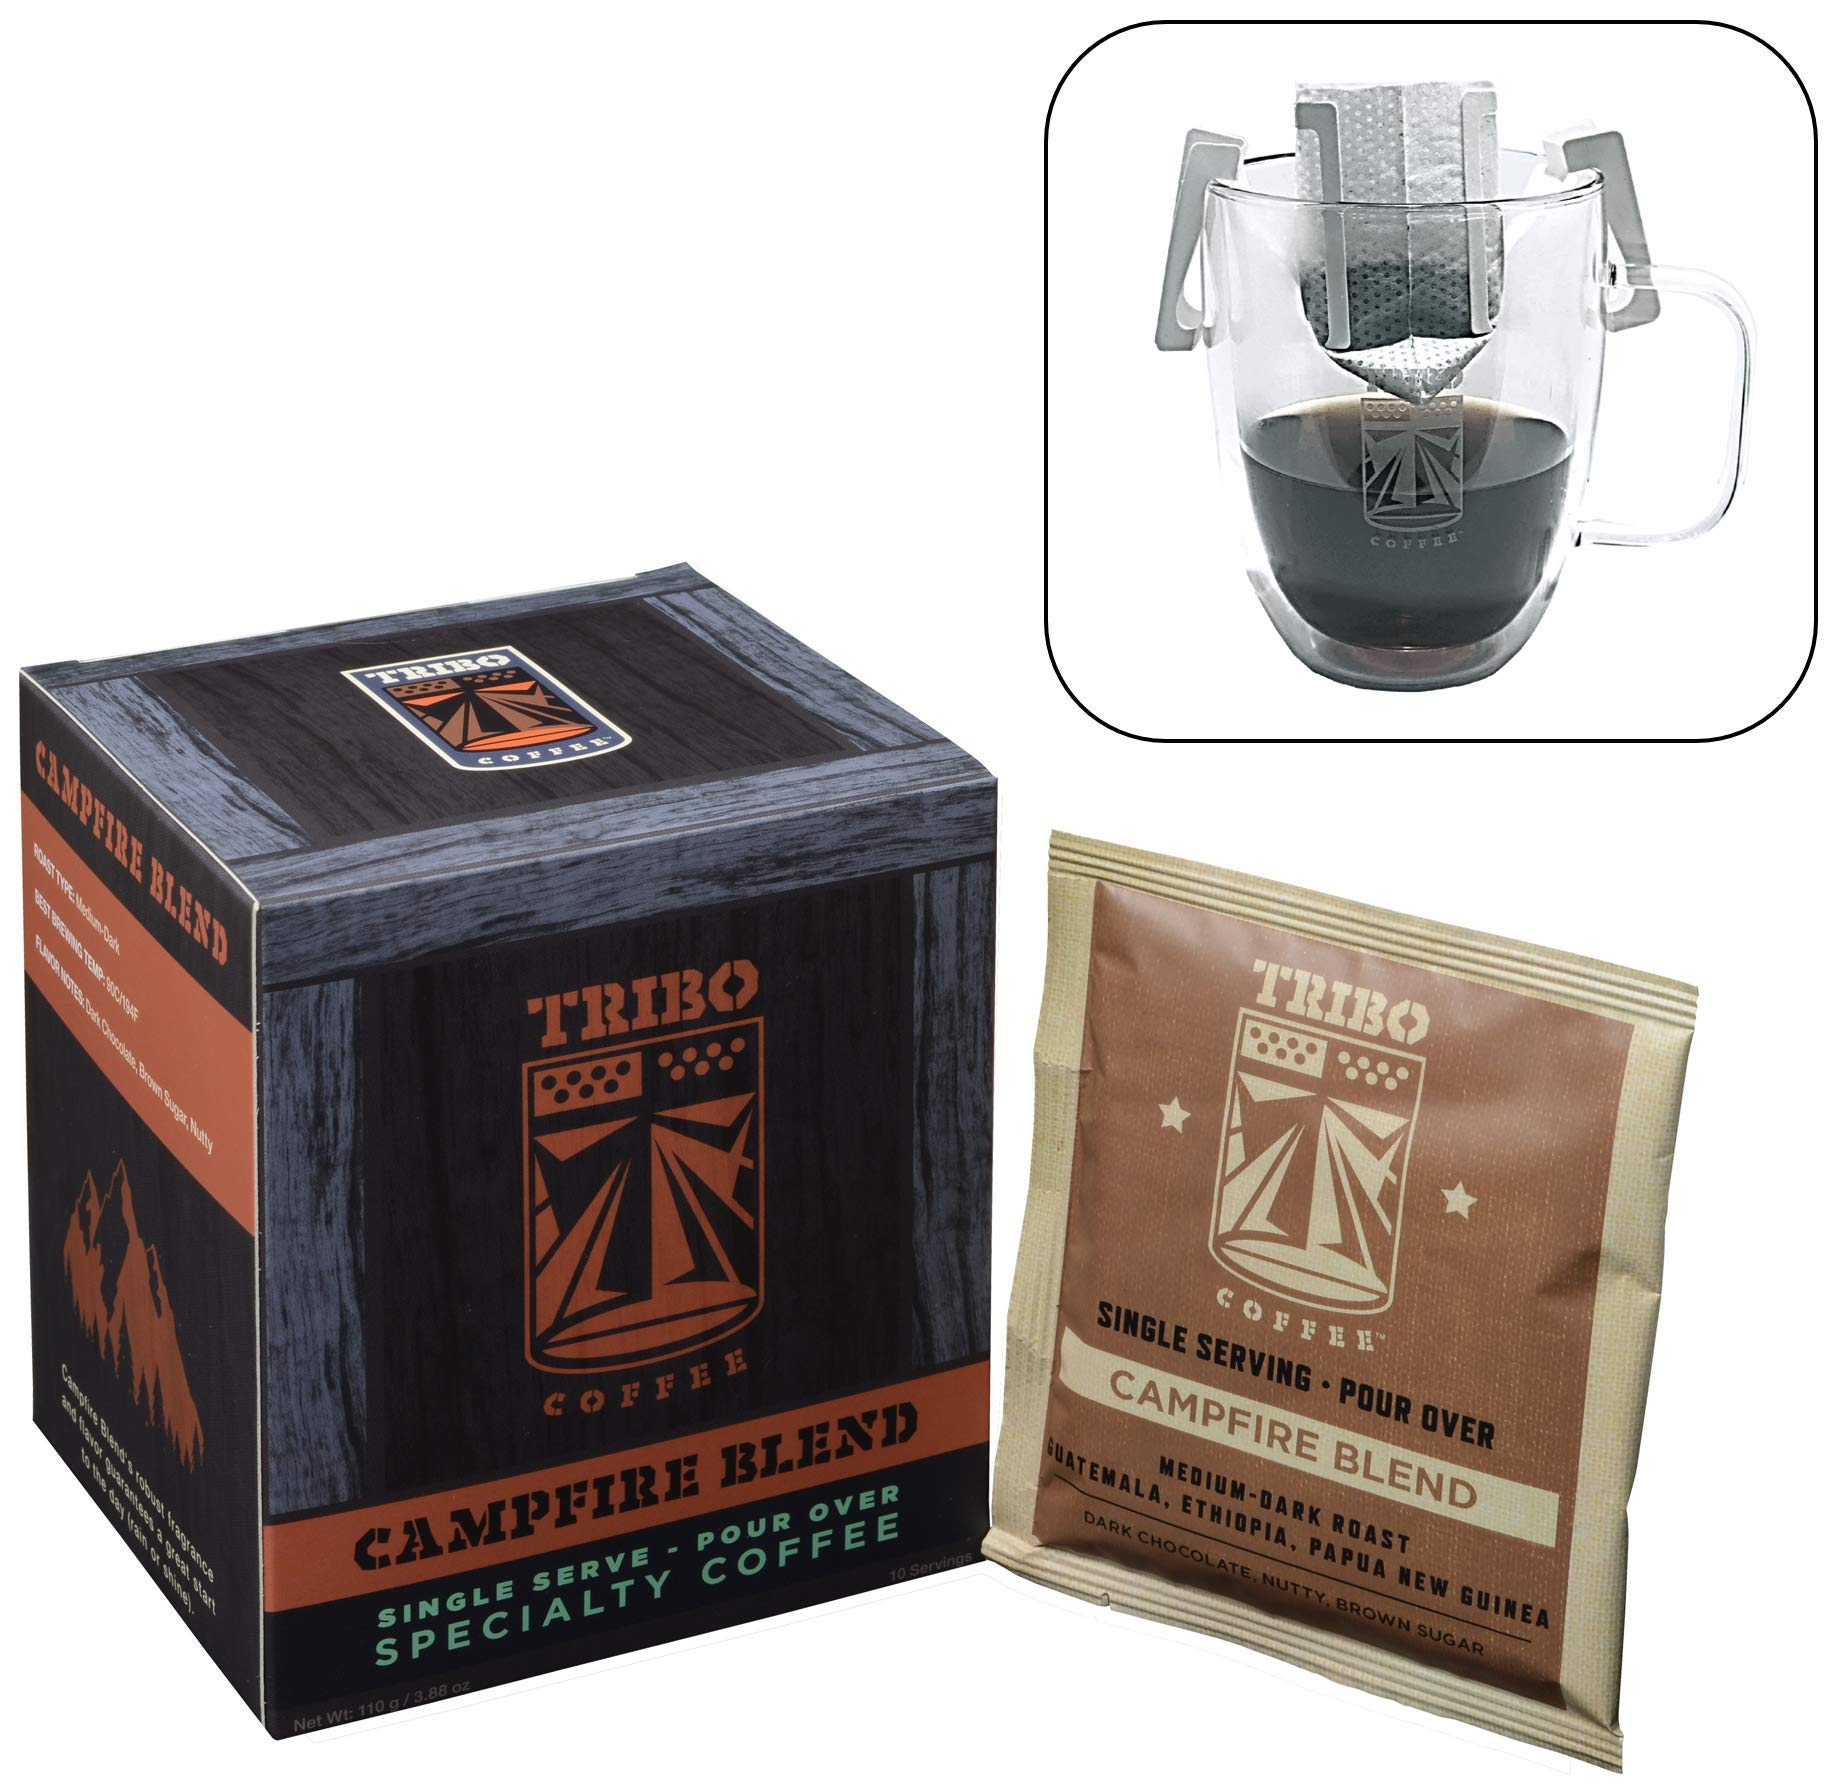 Tribo Coffee Single-Serve Portable Pour Over Drip Coffee - Specialty Grade - Campfire Blend - 10 Servings Per Box (Medium-Dark Roast)